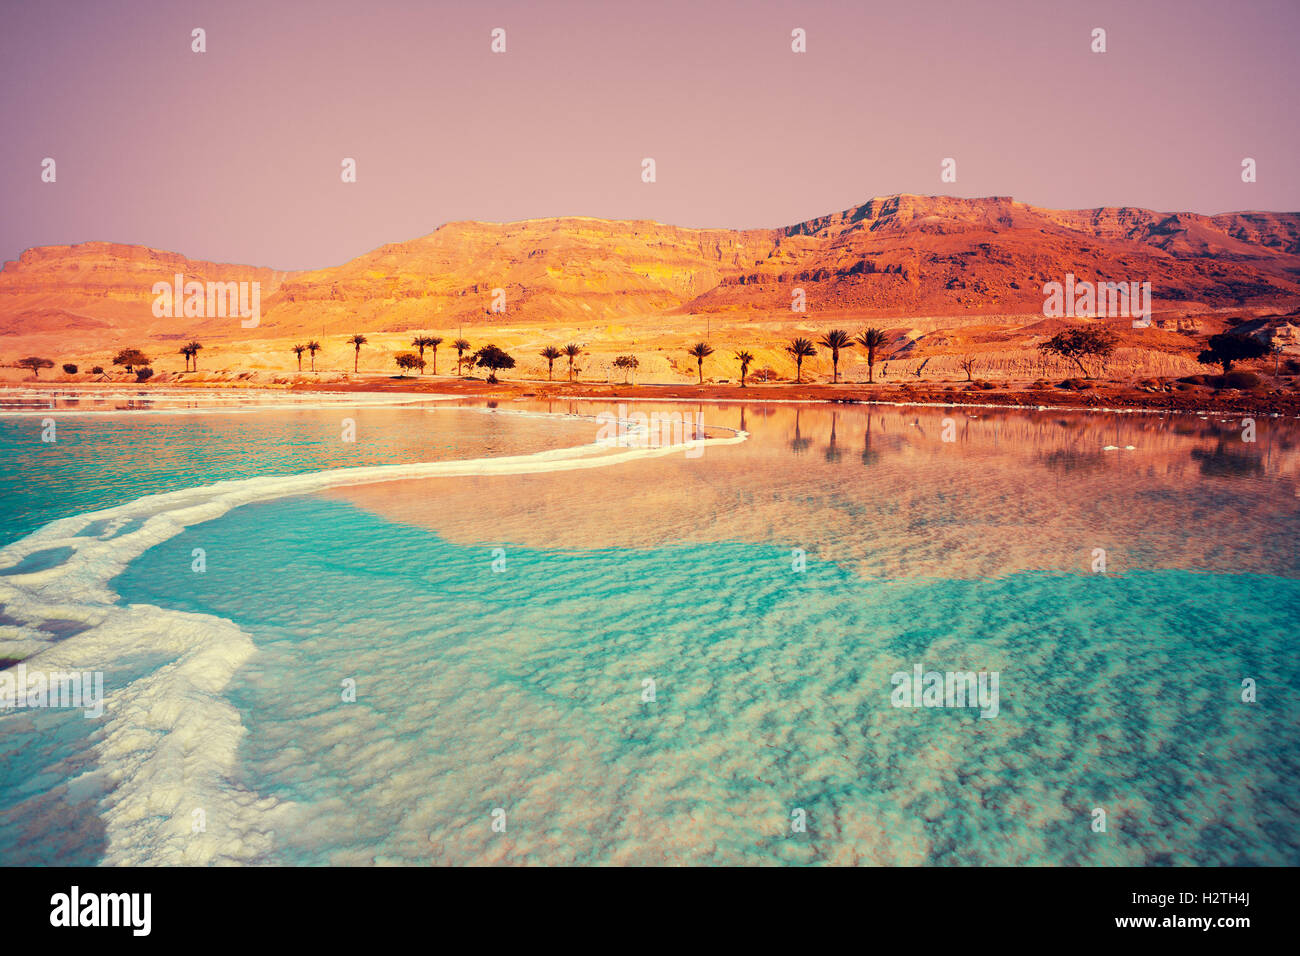 Dead Sea seashore with palm trees and mountains on background - Stock Image